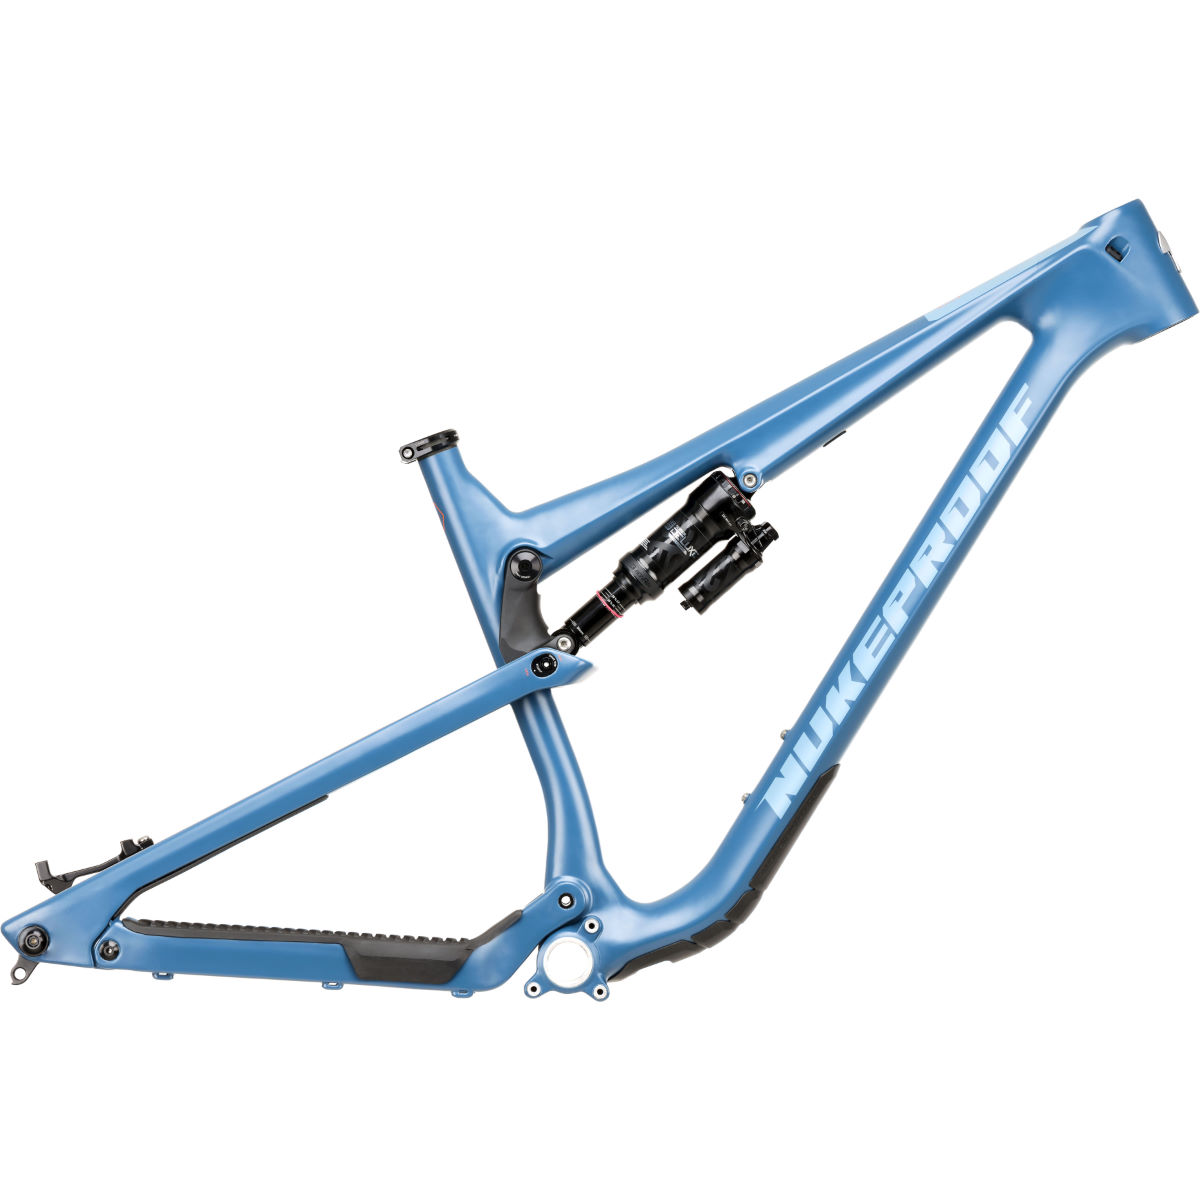 Nukeproof Nukeproof Reactor 290 Carbon Mountain Bike Frame (2020)   Full Sus Mountain Bike Frames